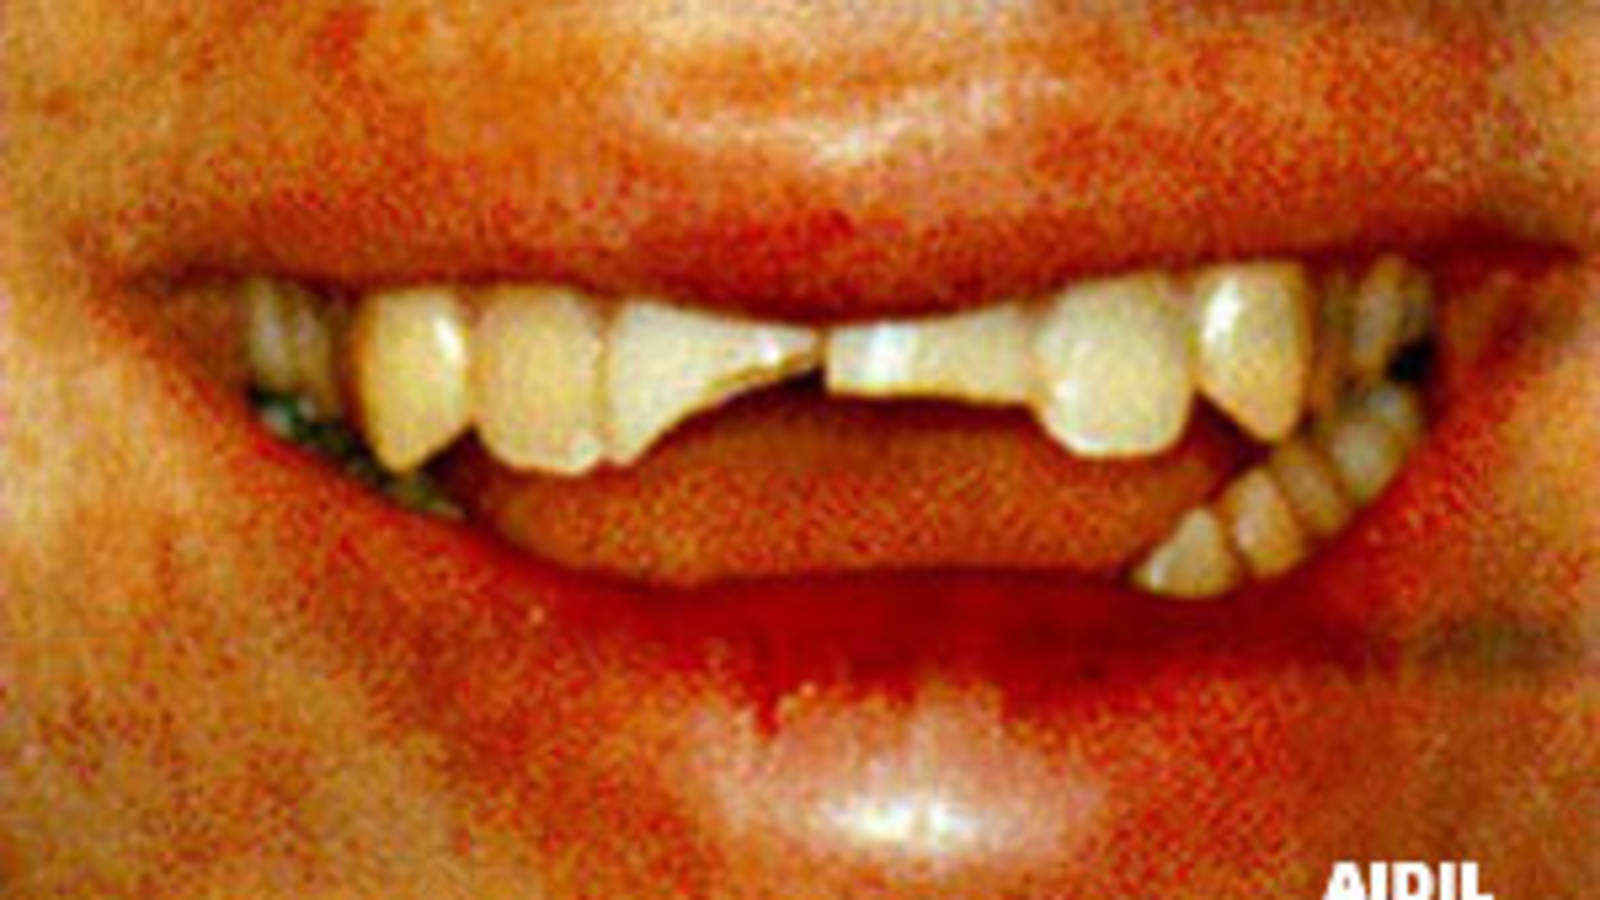 Mouth - Fractured Teeth